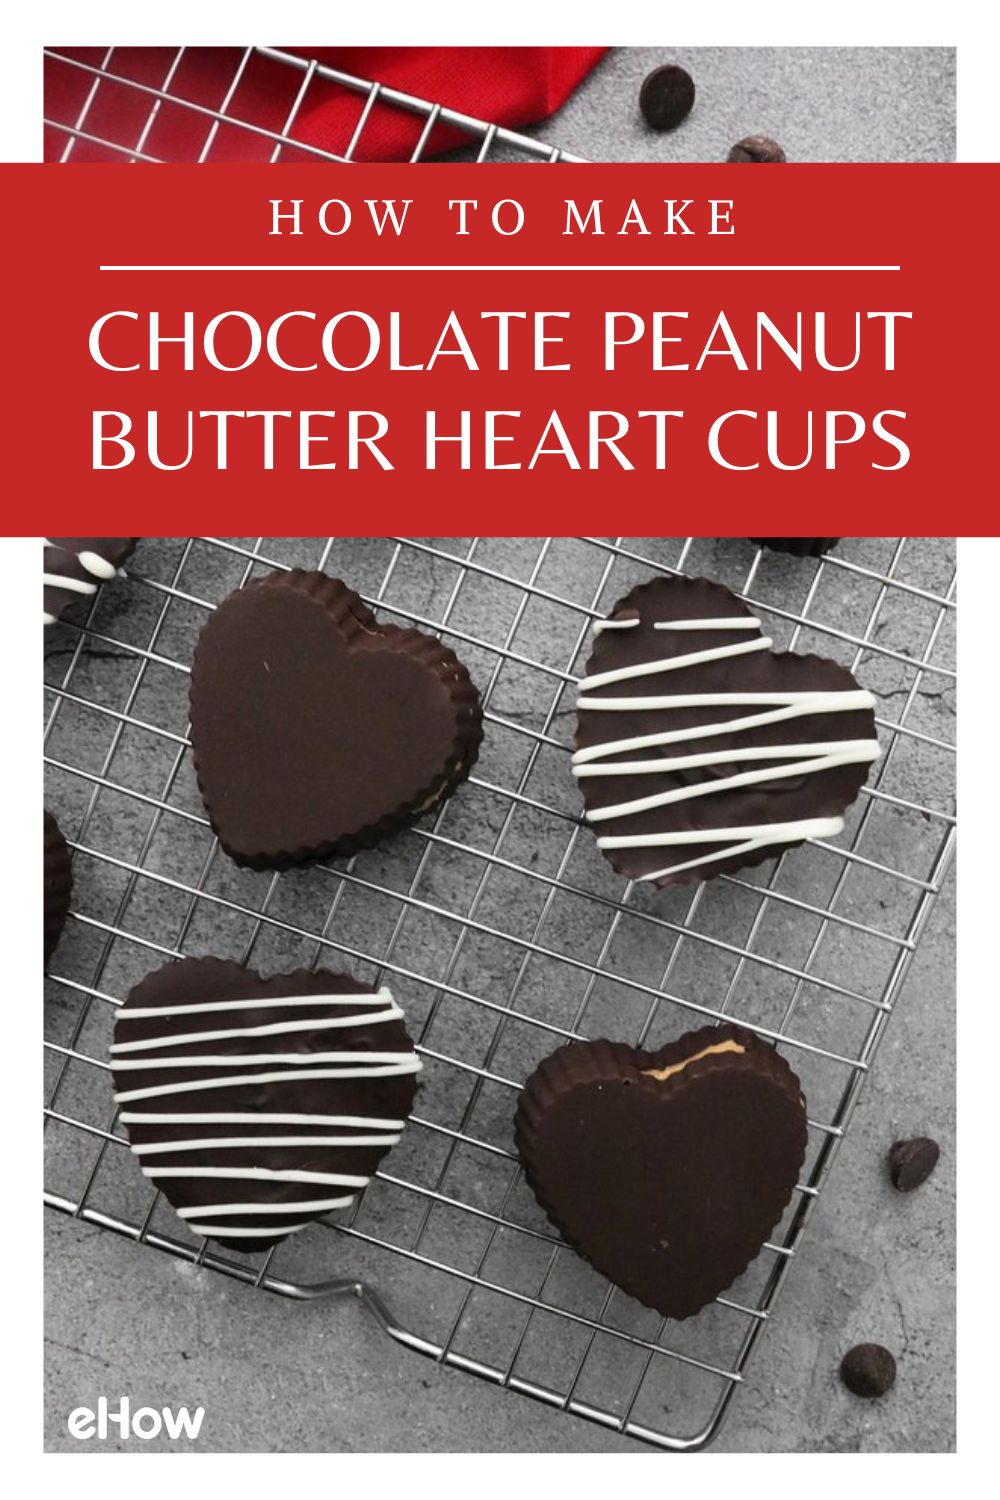 How to Make Chocolate Peanut Butter Heart Cups